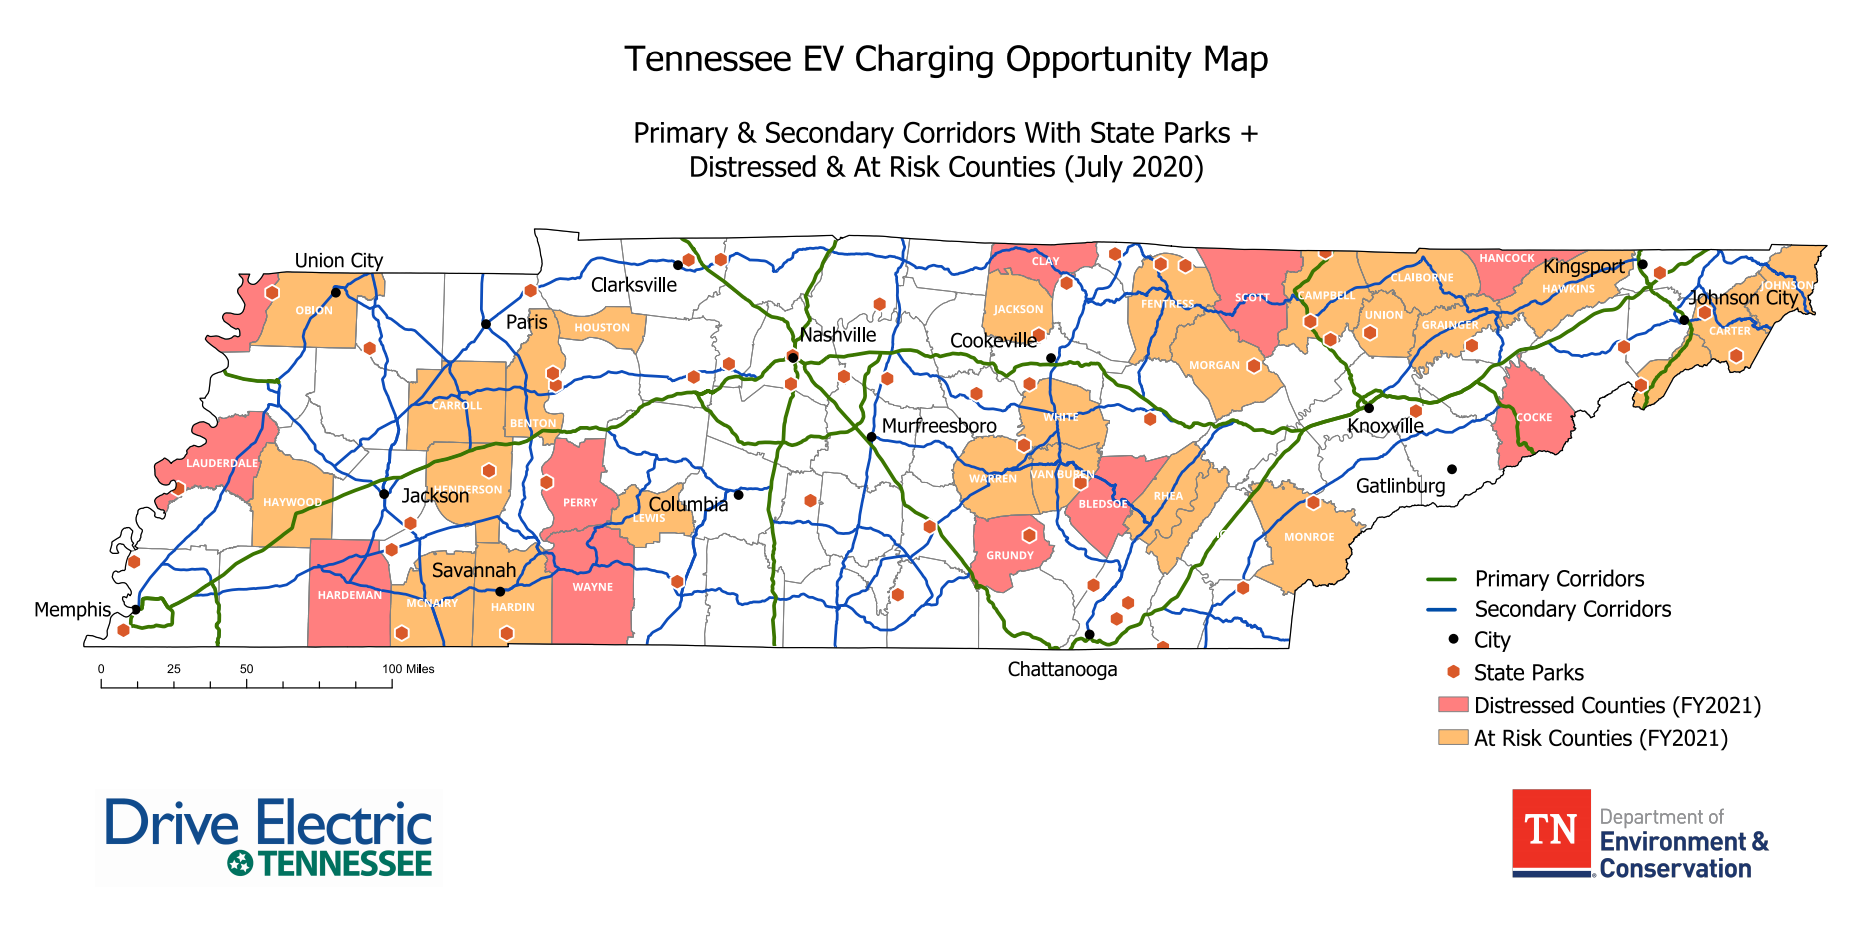 Opportunities for EV chargers in distressed and at risk counties, Tennessee map